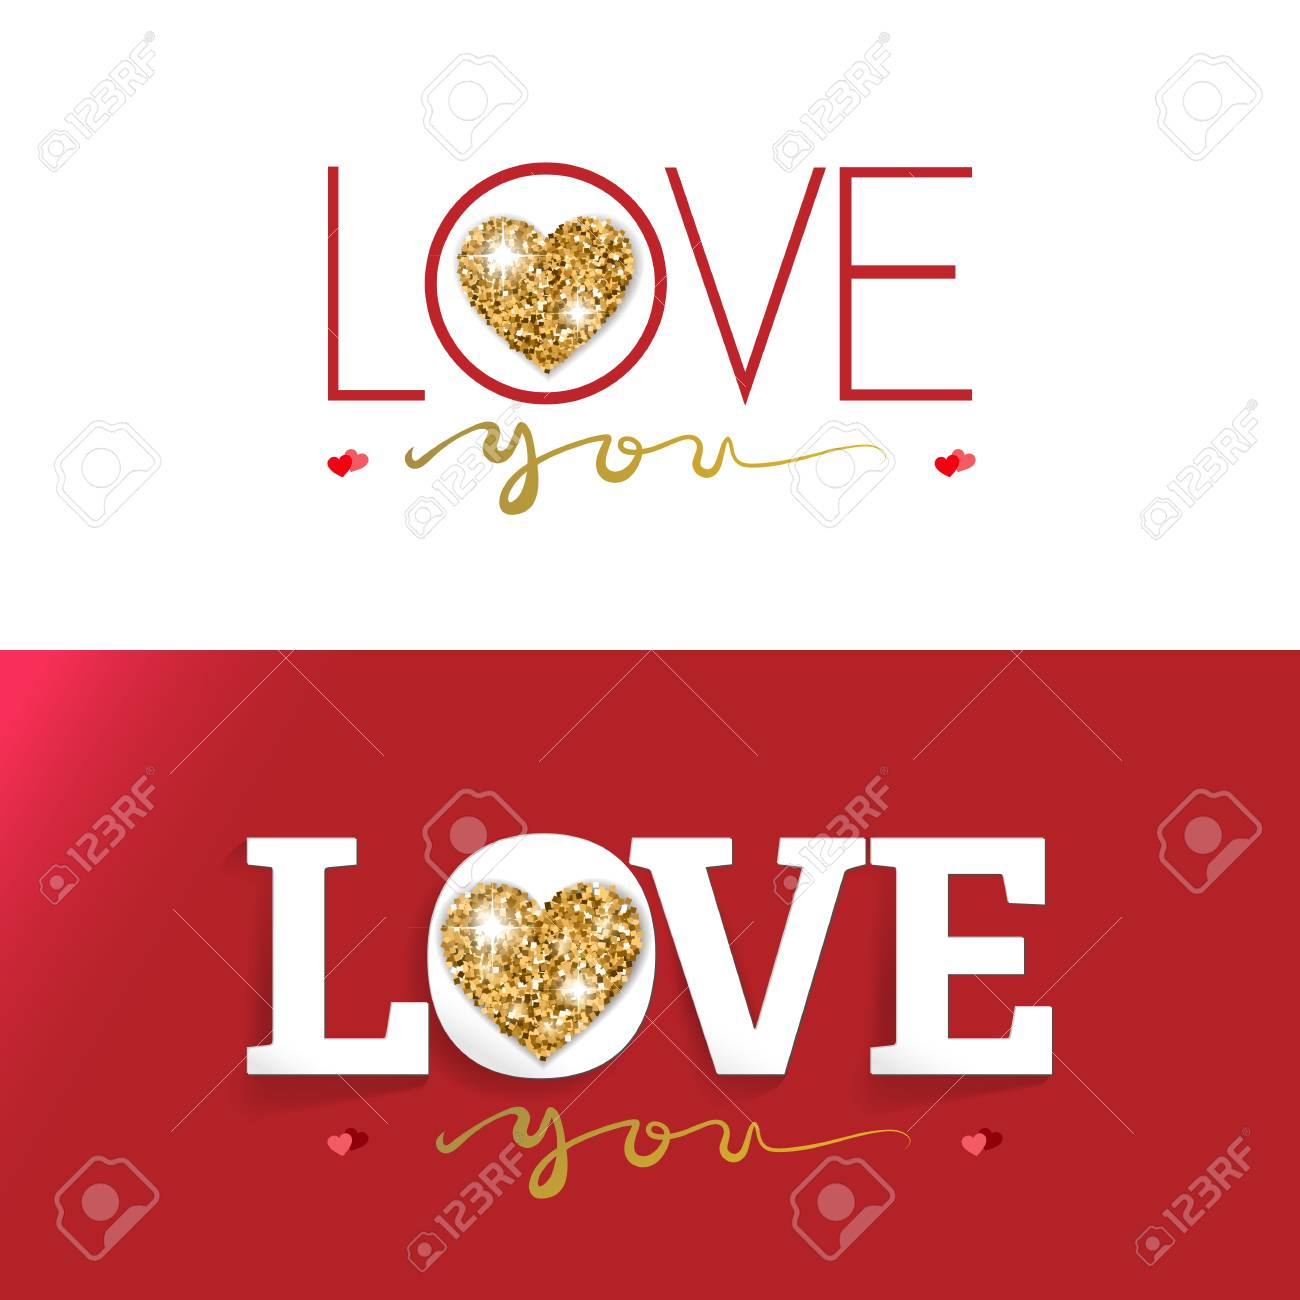 LOVE Happy Valentines Day Card, Design Greeting Cards And Banners ...